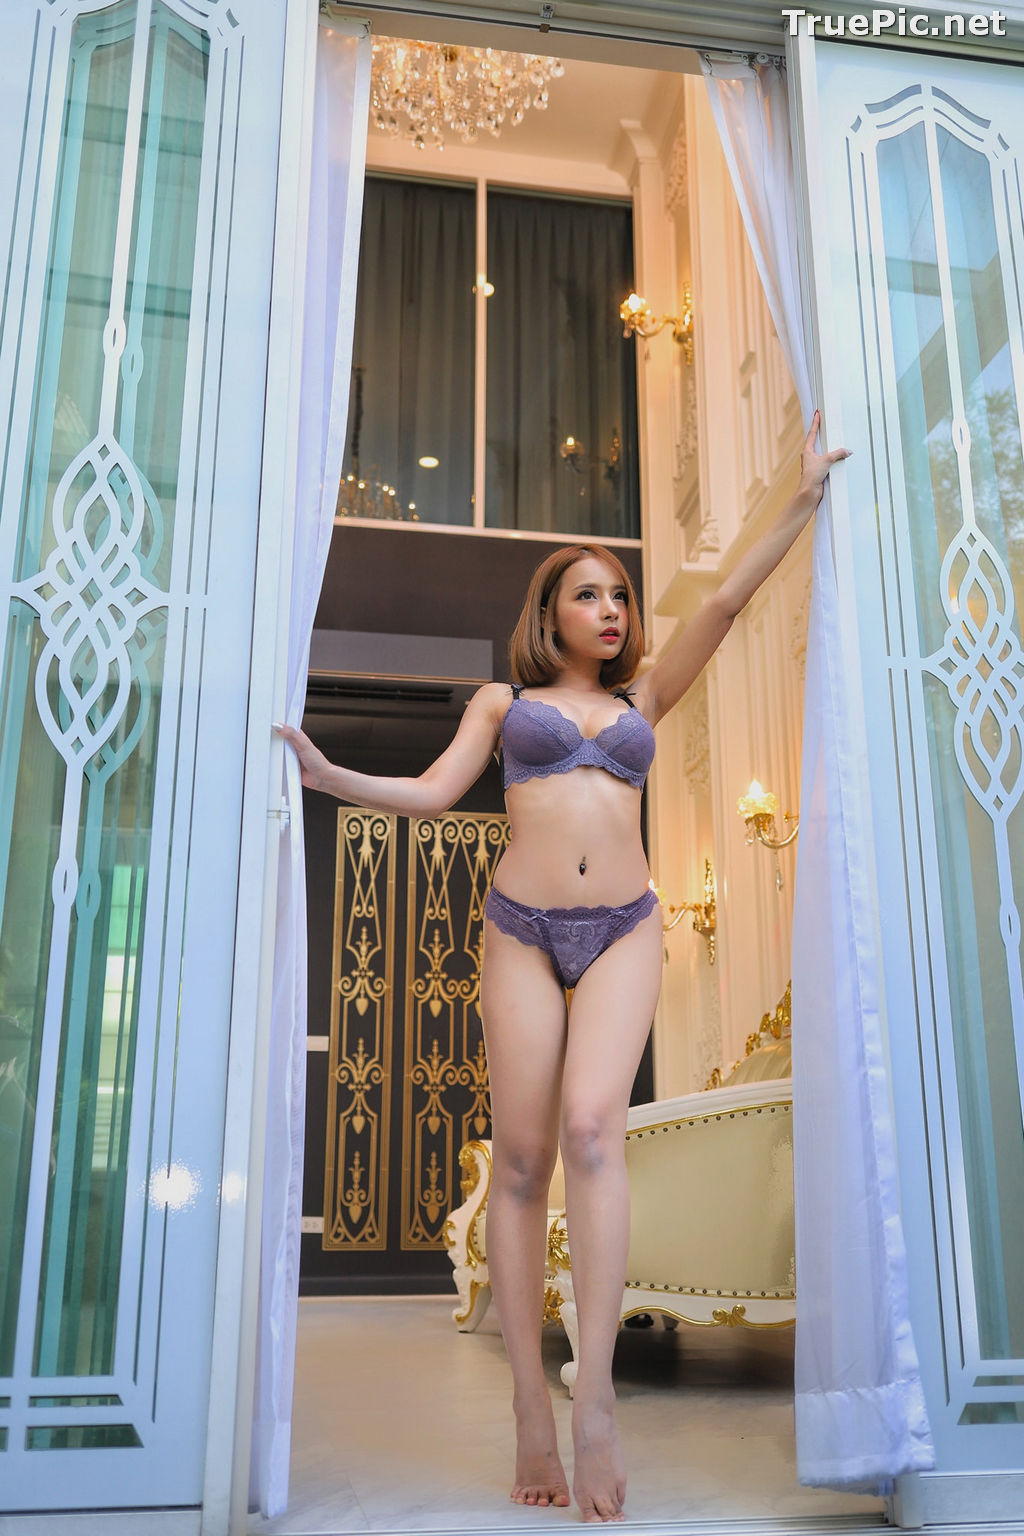 Image Thailand Model - ธนพร อ้นเซ่ง - Sexy In Purple Lingerie - TruePic.net - Picture-7